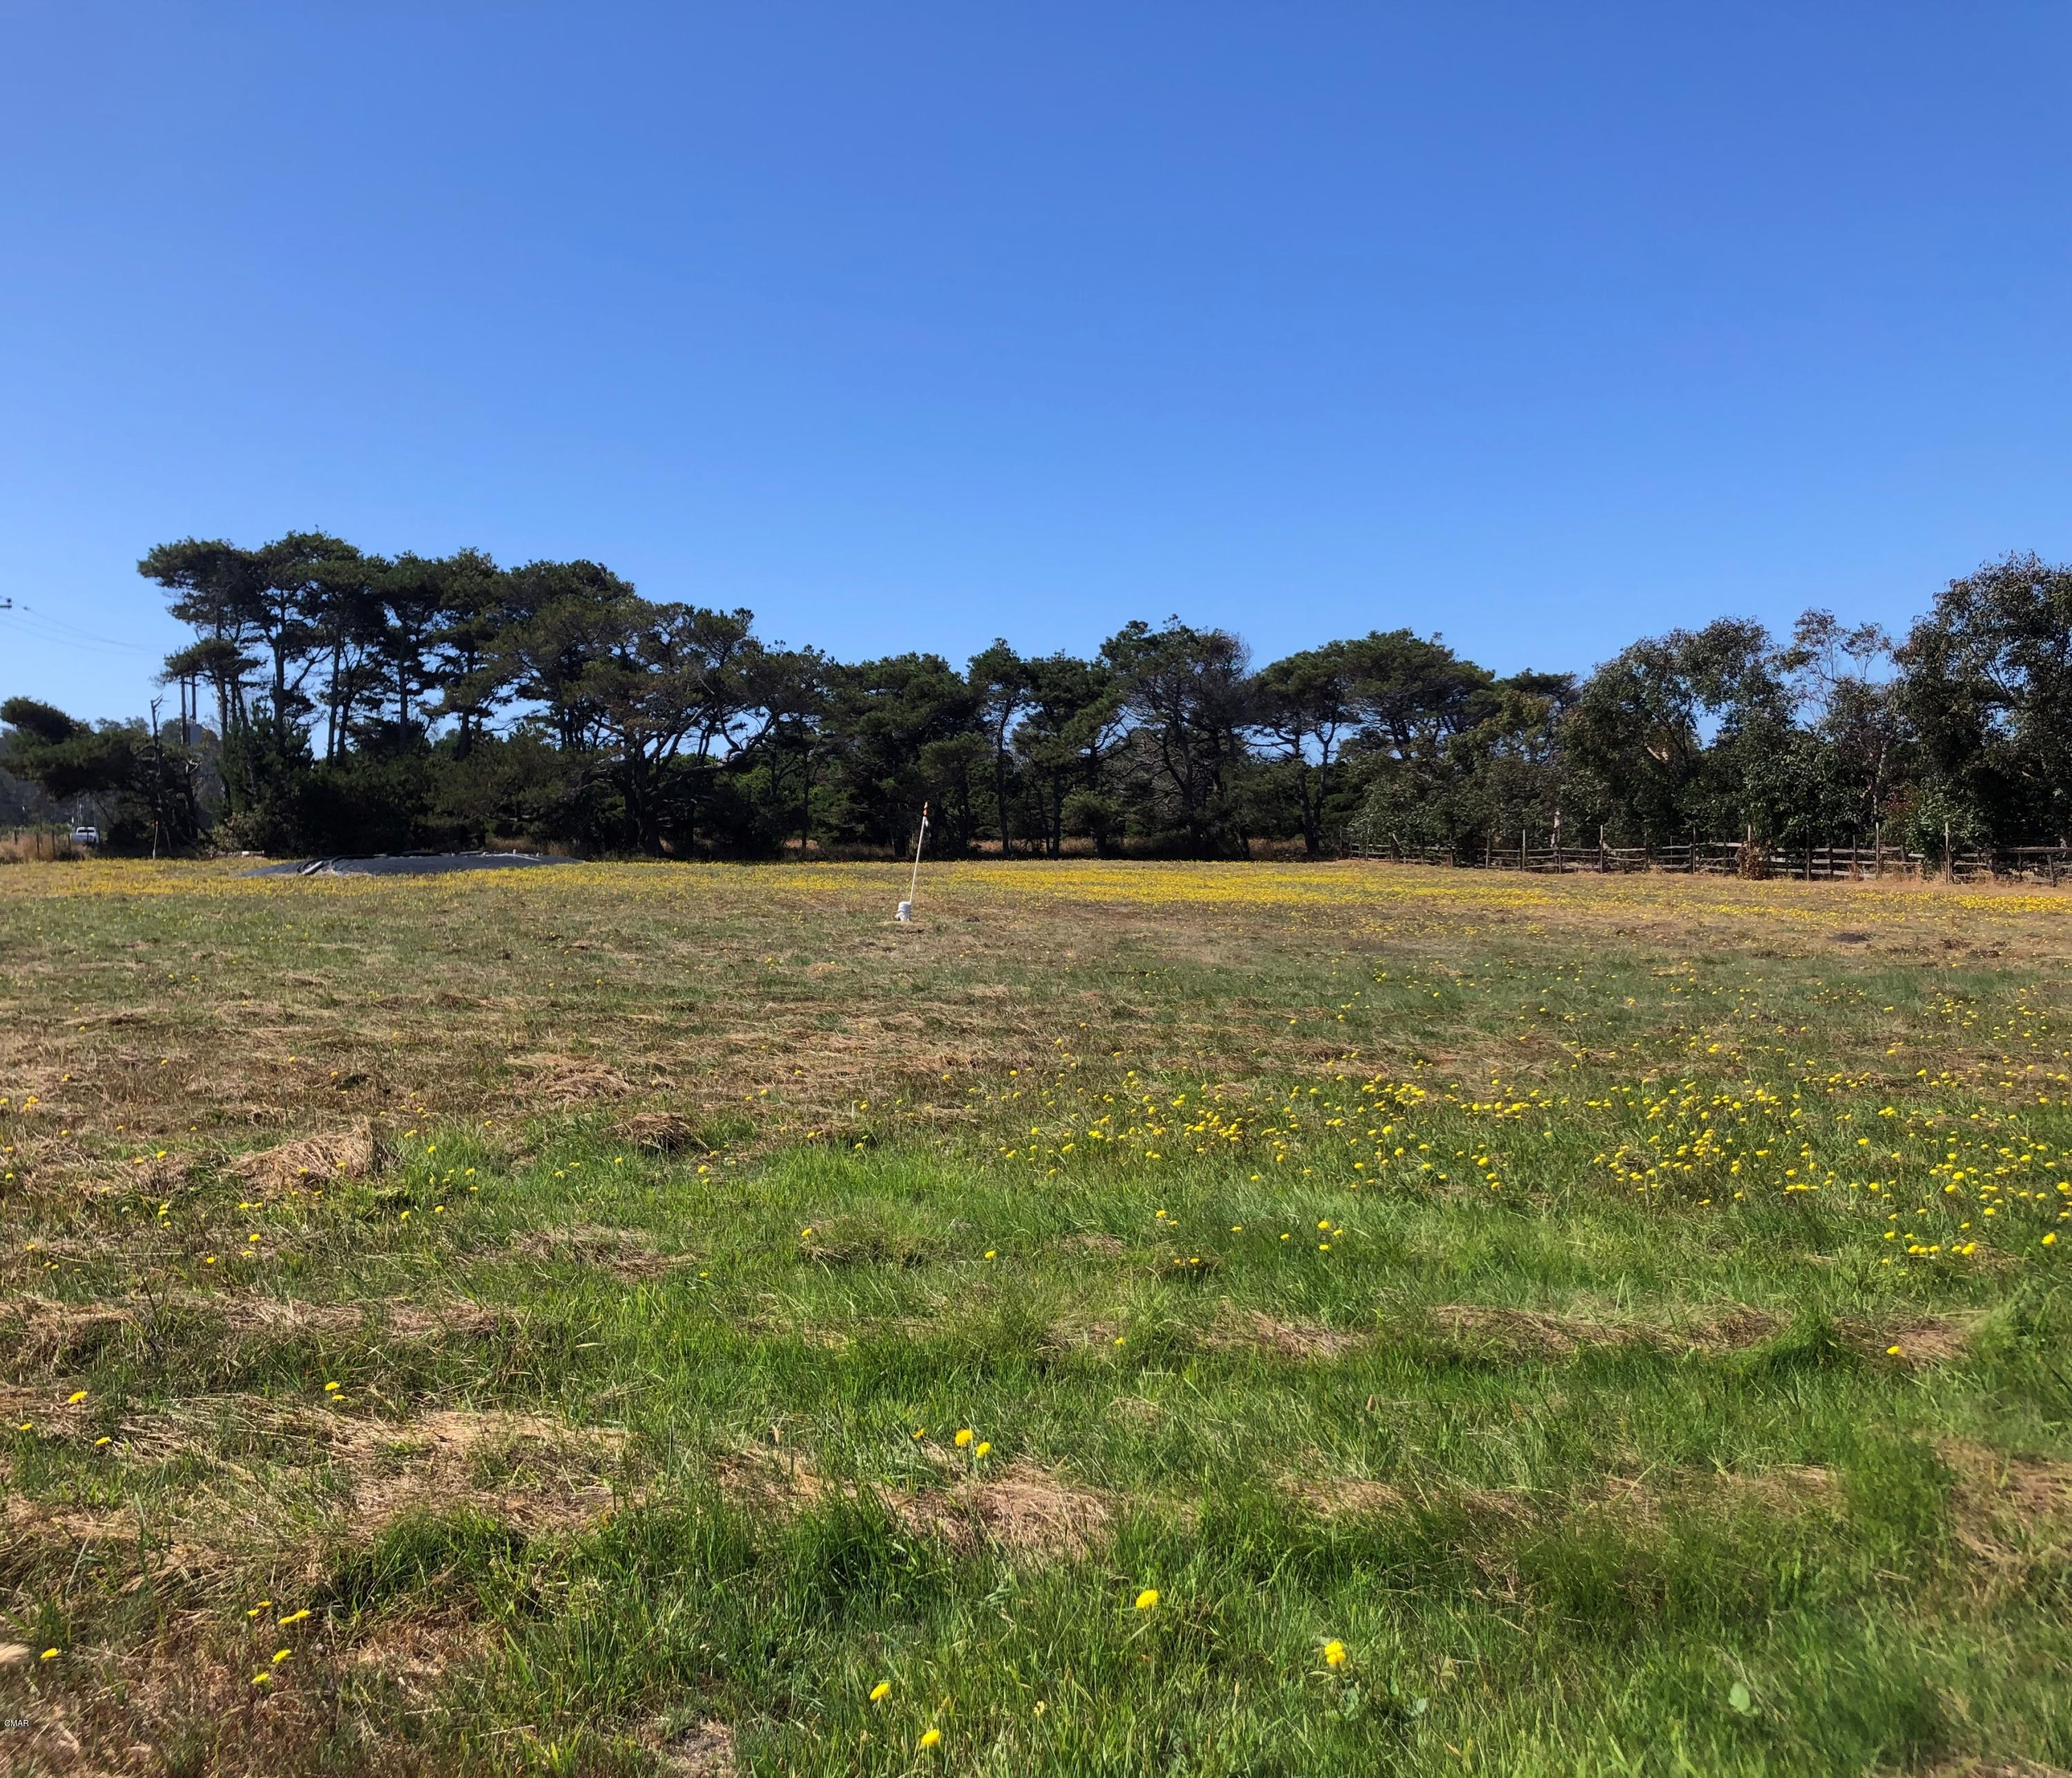 Build your coastal home now. All Coastal Development permits and local plans approved. 1.27 acre vacant lot, bordered on one side by Jug Handle State Natural Reserve, one block from the ocean , via an adjacent county road, in a quiet neighborhood with direct access to State Highway 1. Conveniently located between the town of Fort Bragg with all the amenities and the quaint village of Mendocino with its artist's galleries and fine restaurants. Well kept, flat terrain lot, regularly and professionally mowed and tilled. Easy access from county road. Producing drilled well, documented over 10 years. Leach field installed. PG&E power, telephone and cable at lot corner. All CDP plans completed by local coastal planning professionals.